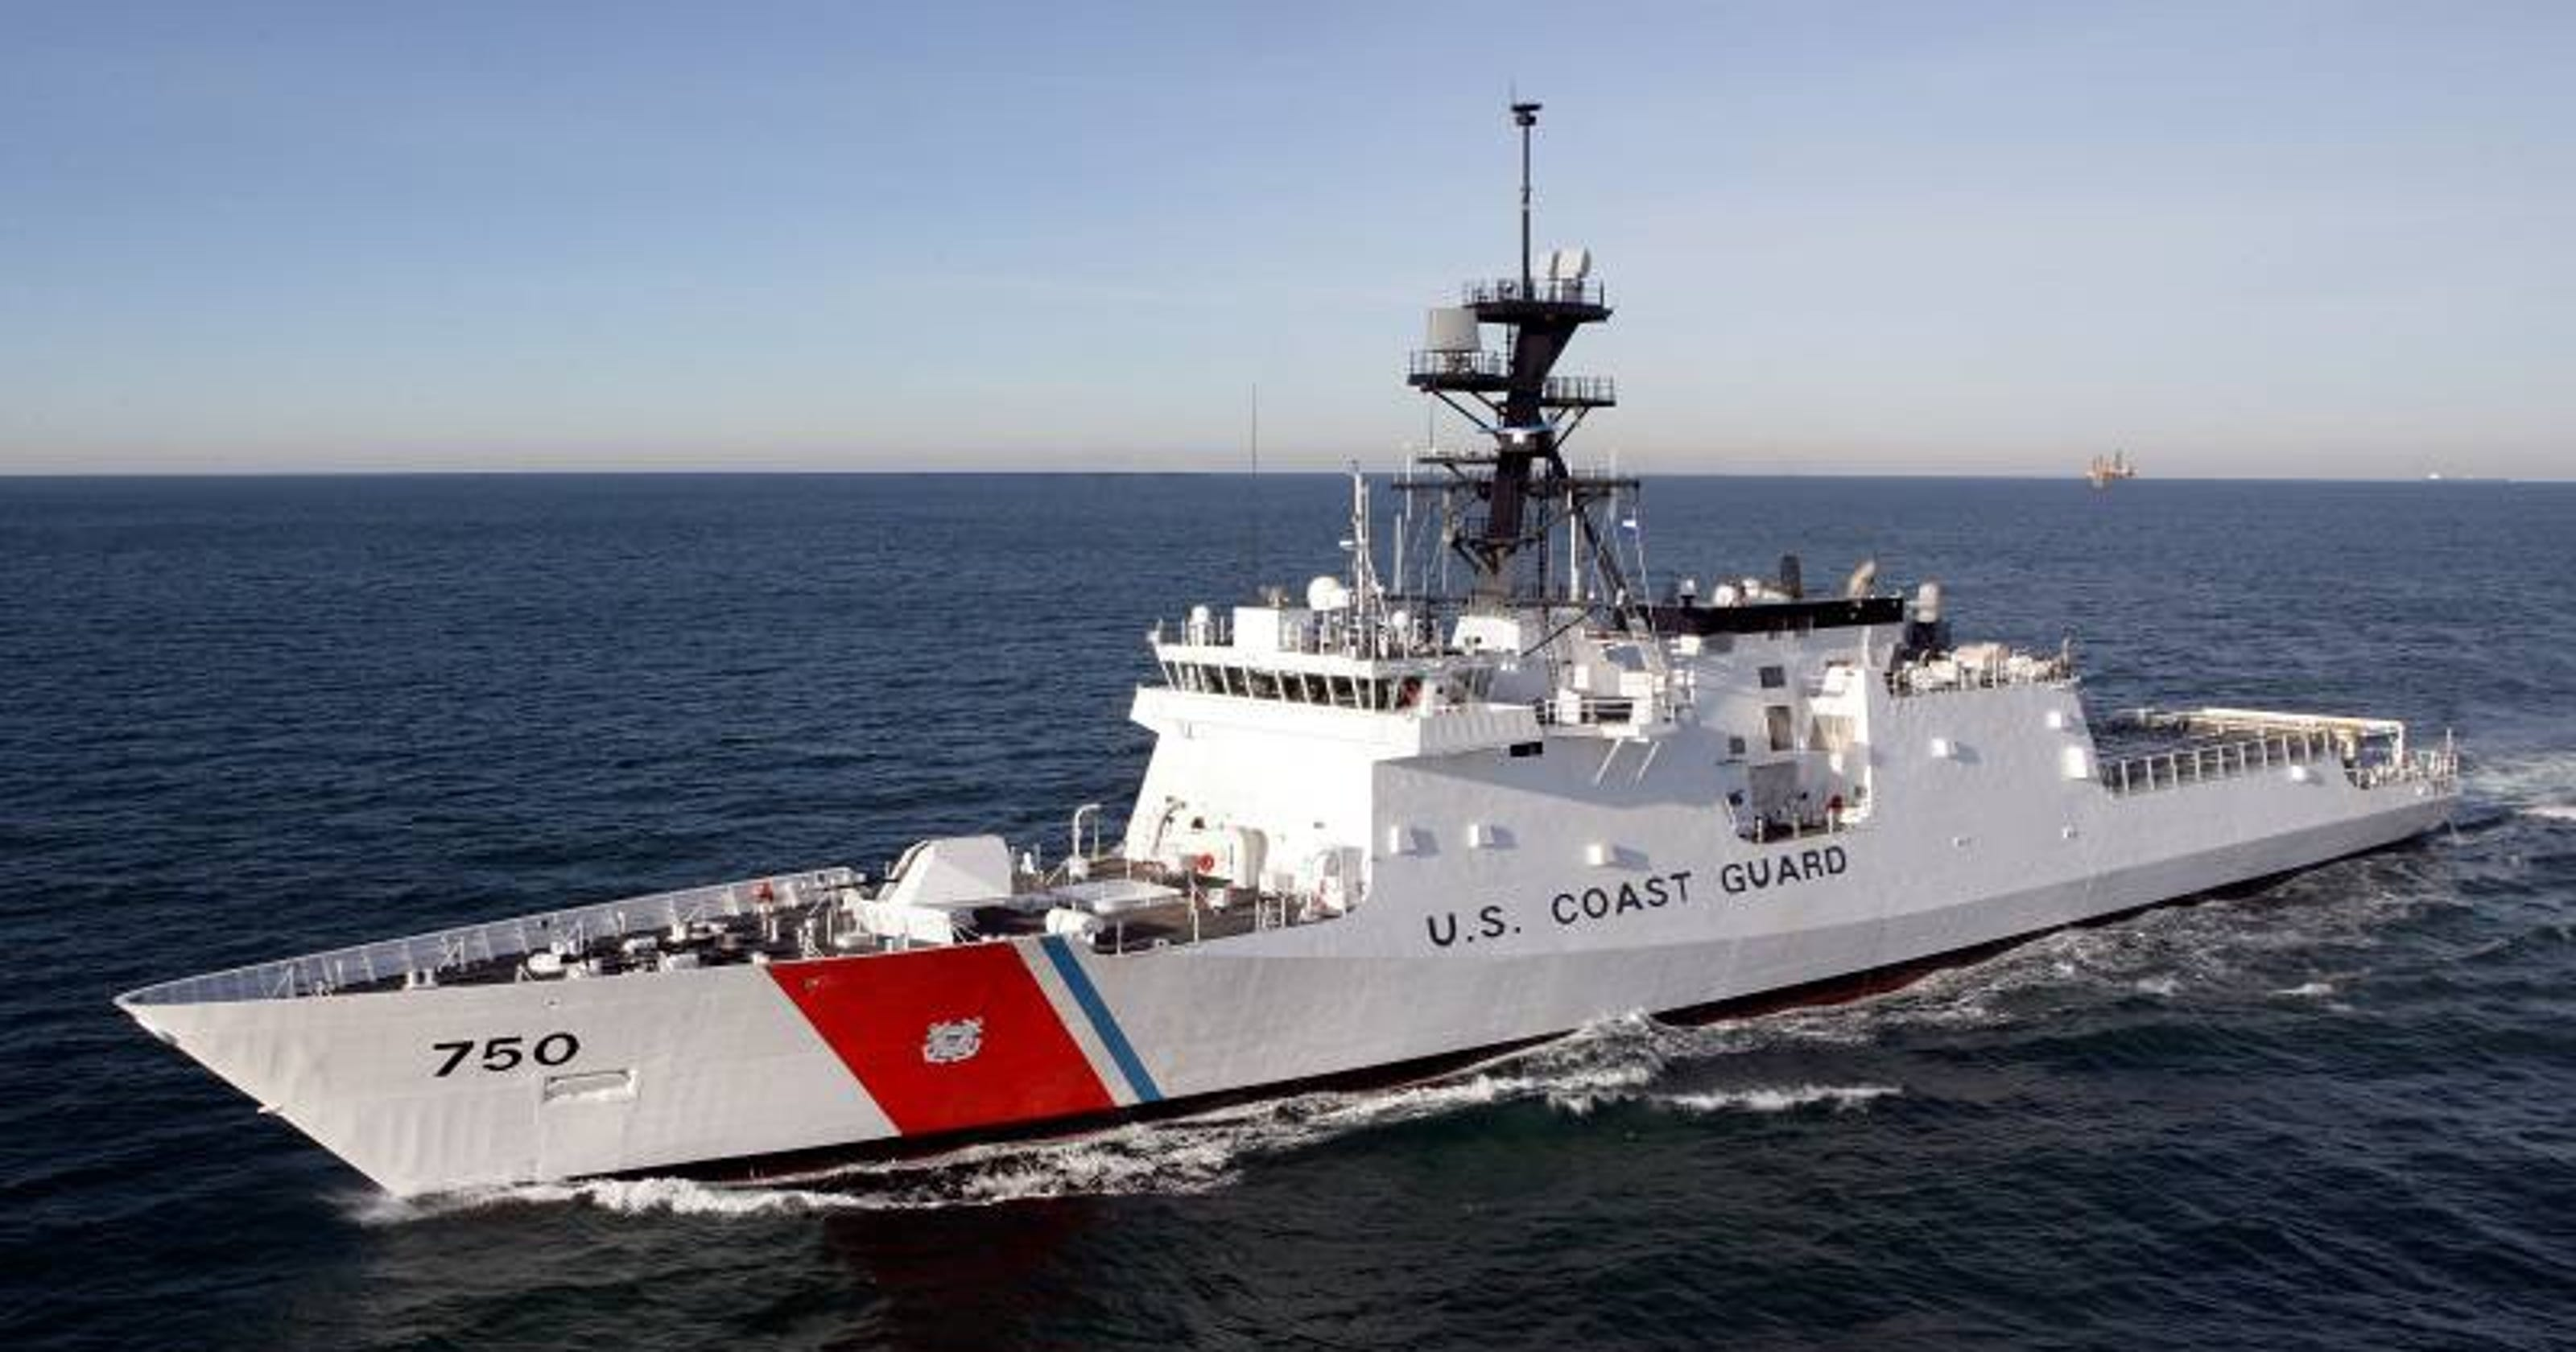 what does uscg stand for